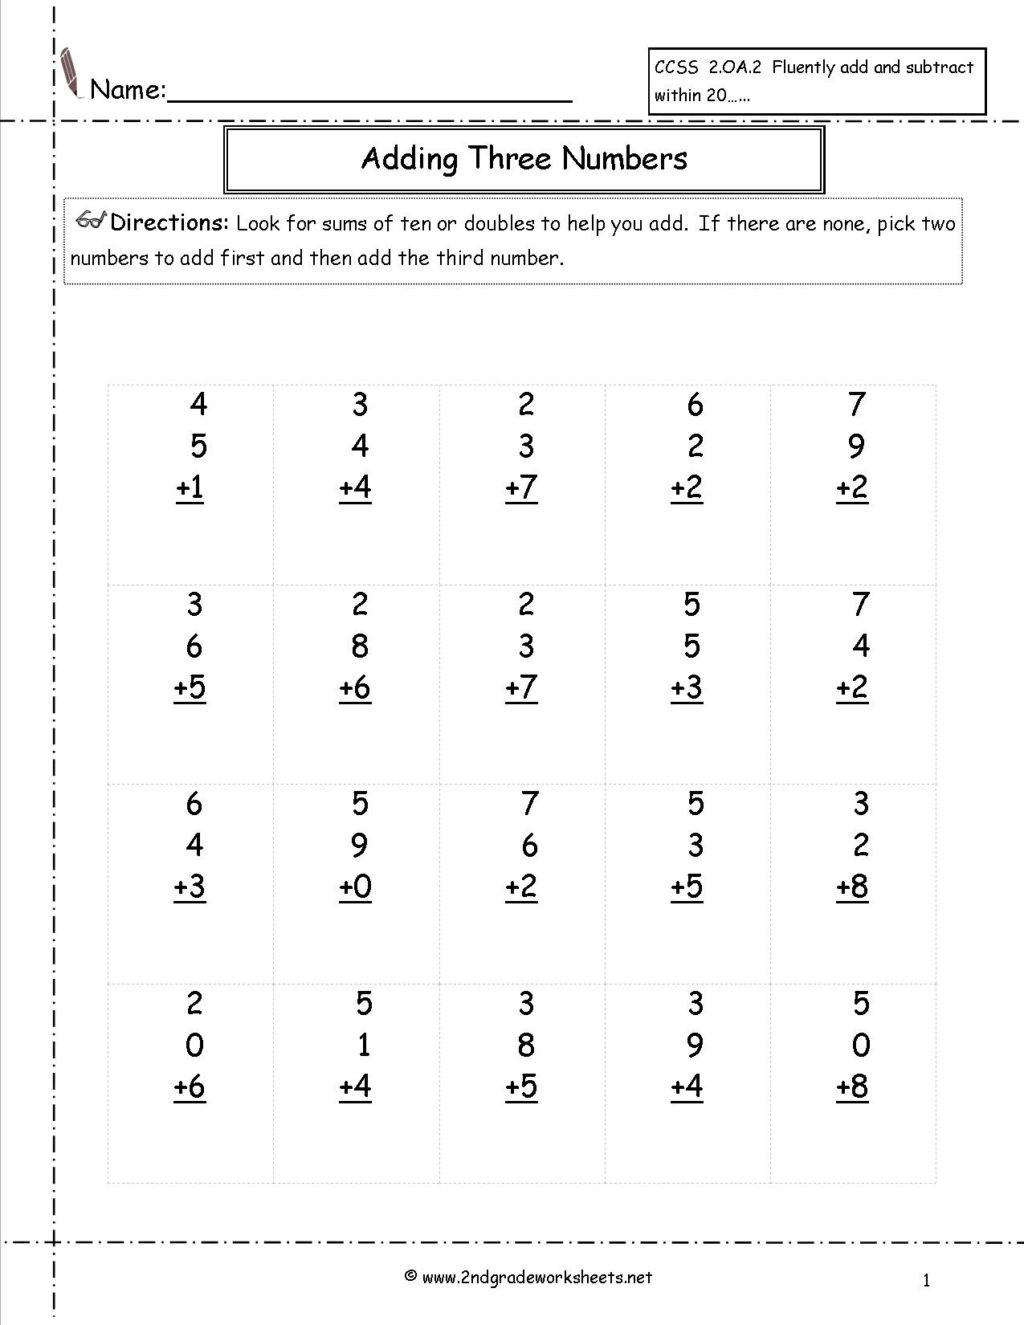 Repeated Addition Worksheets 2nd Grade Worksheet Worksheet Addition 2ndde Addingthreenumbers Free